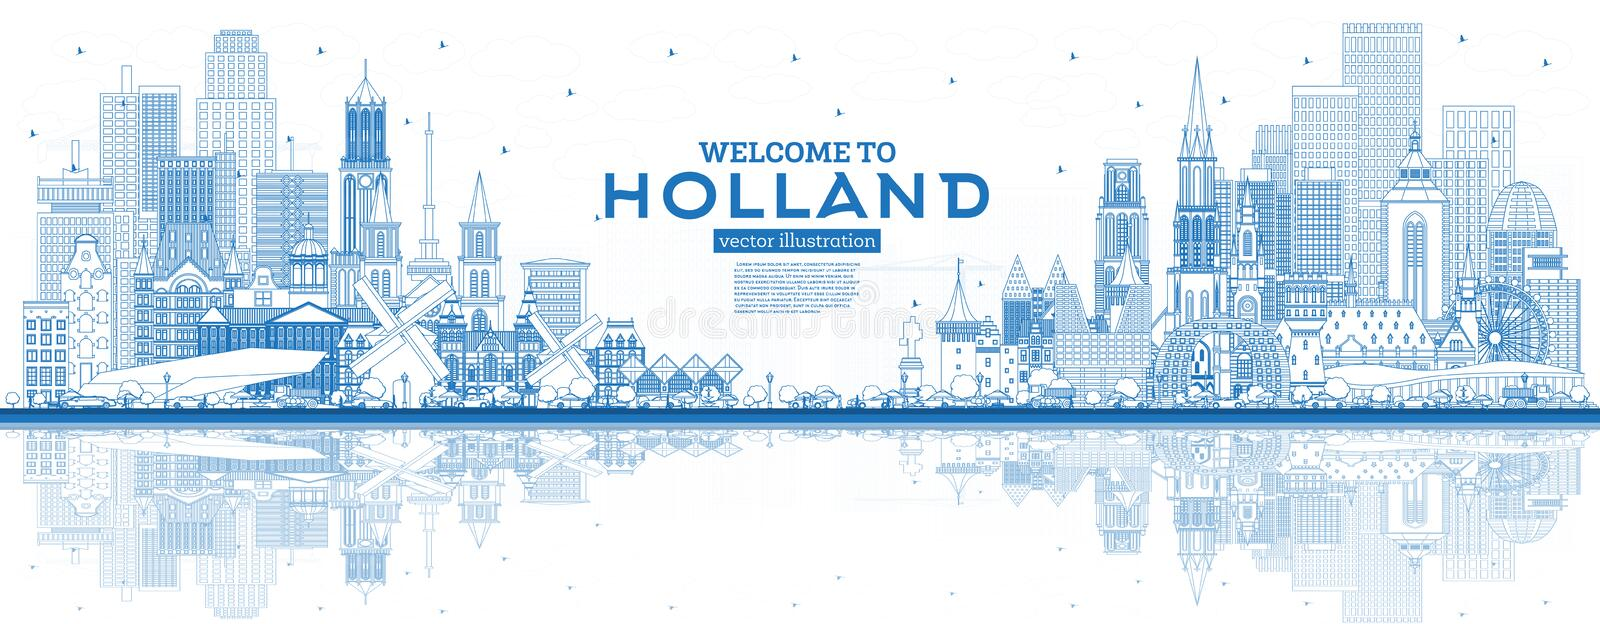 Outline Welcome to Netherlands Skyline with Blue Buildings. Vector Illustration. Tourism Concept with Historic Architecture. Cityscape with Landmarks royalty free illustration